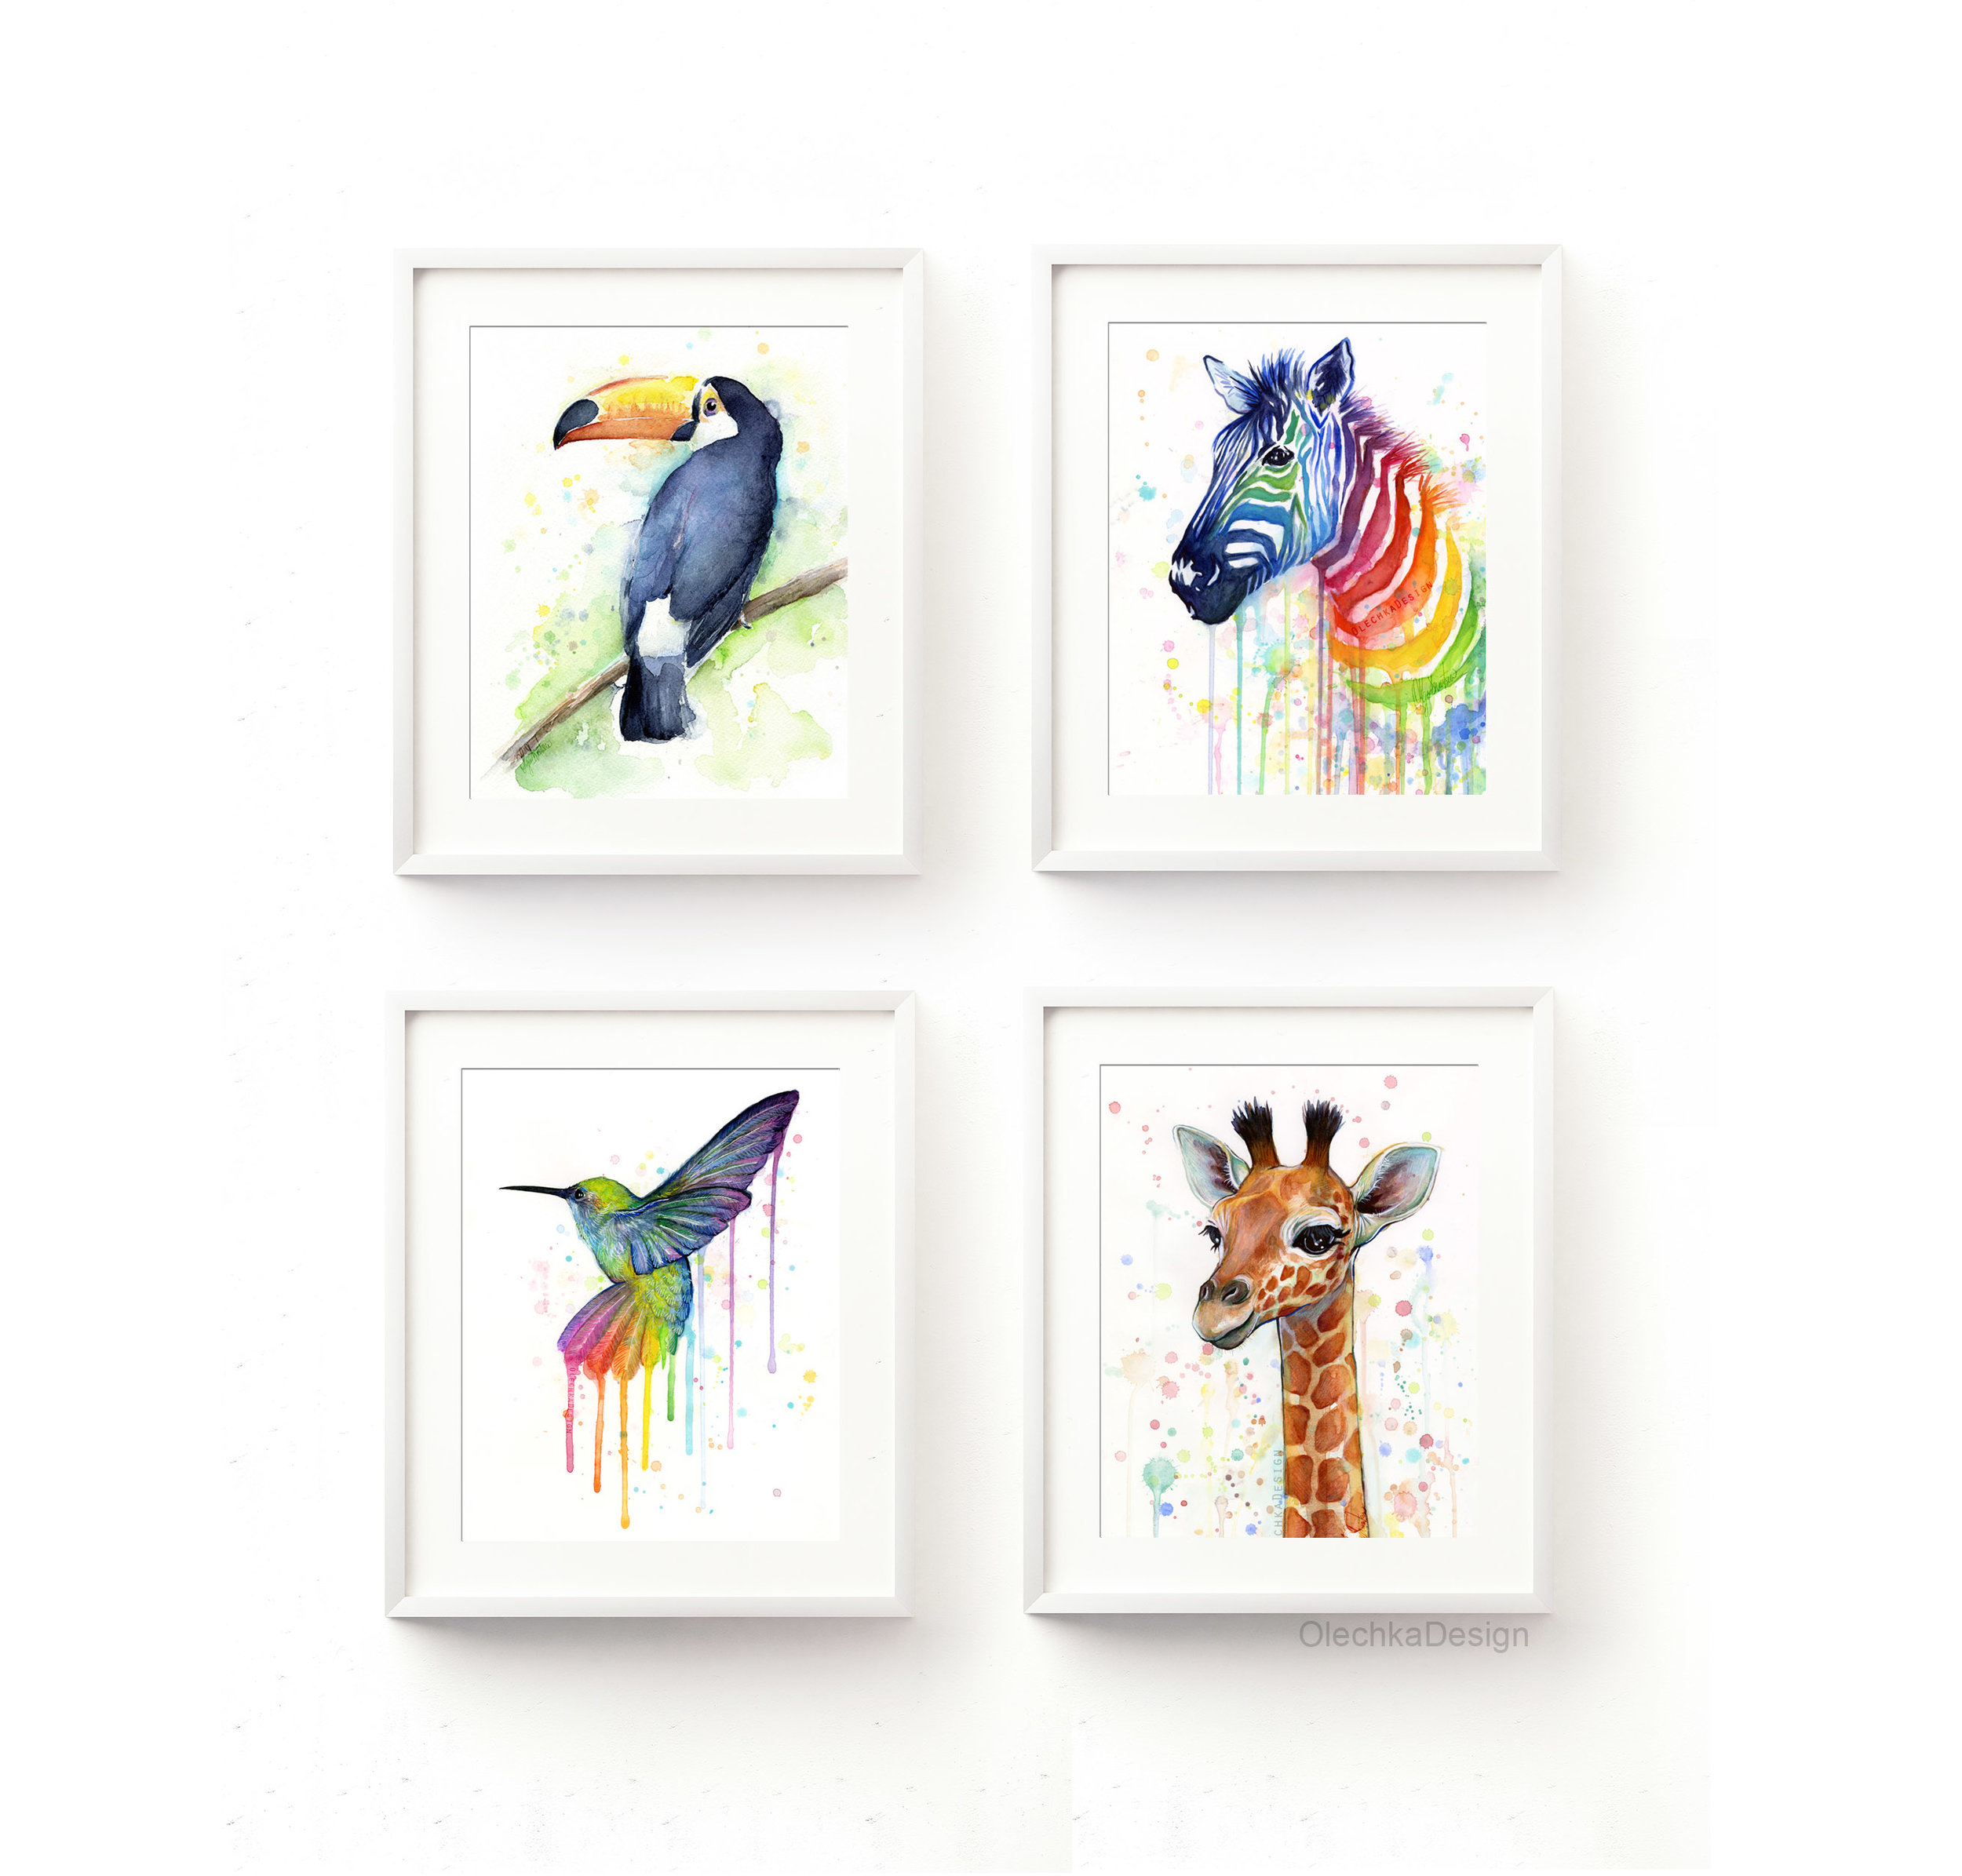 rainbow-nursery-animal-decor